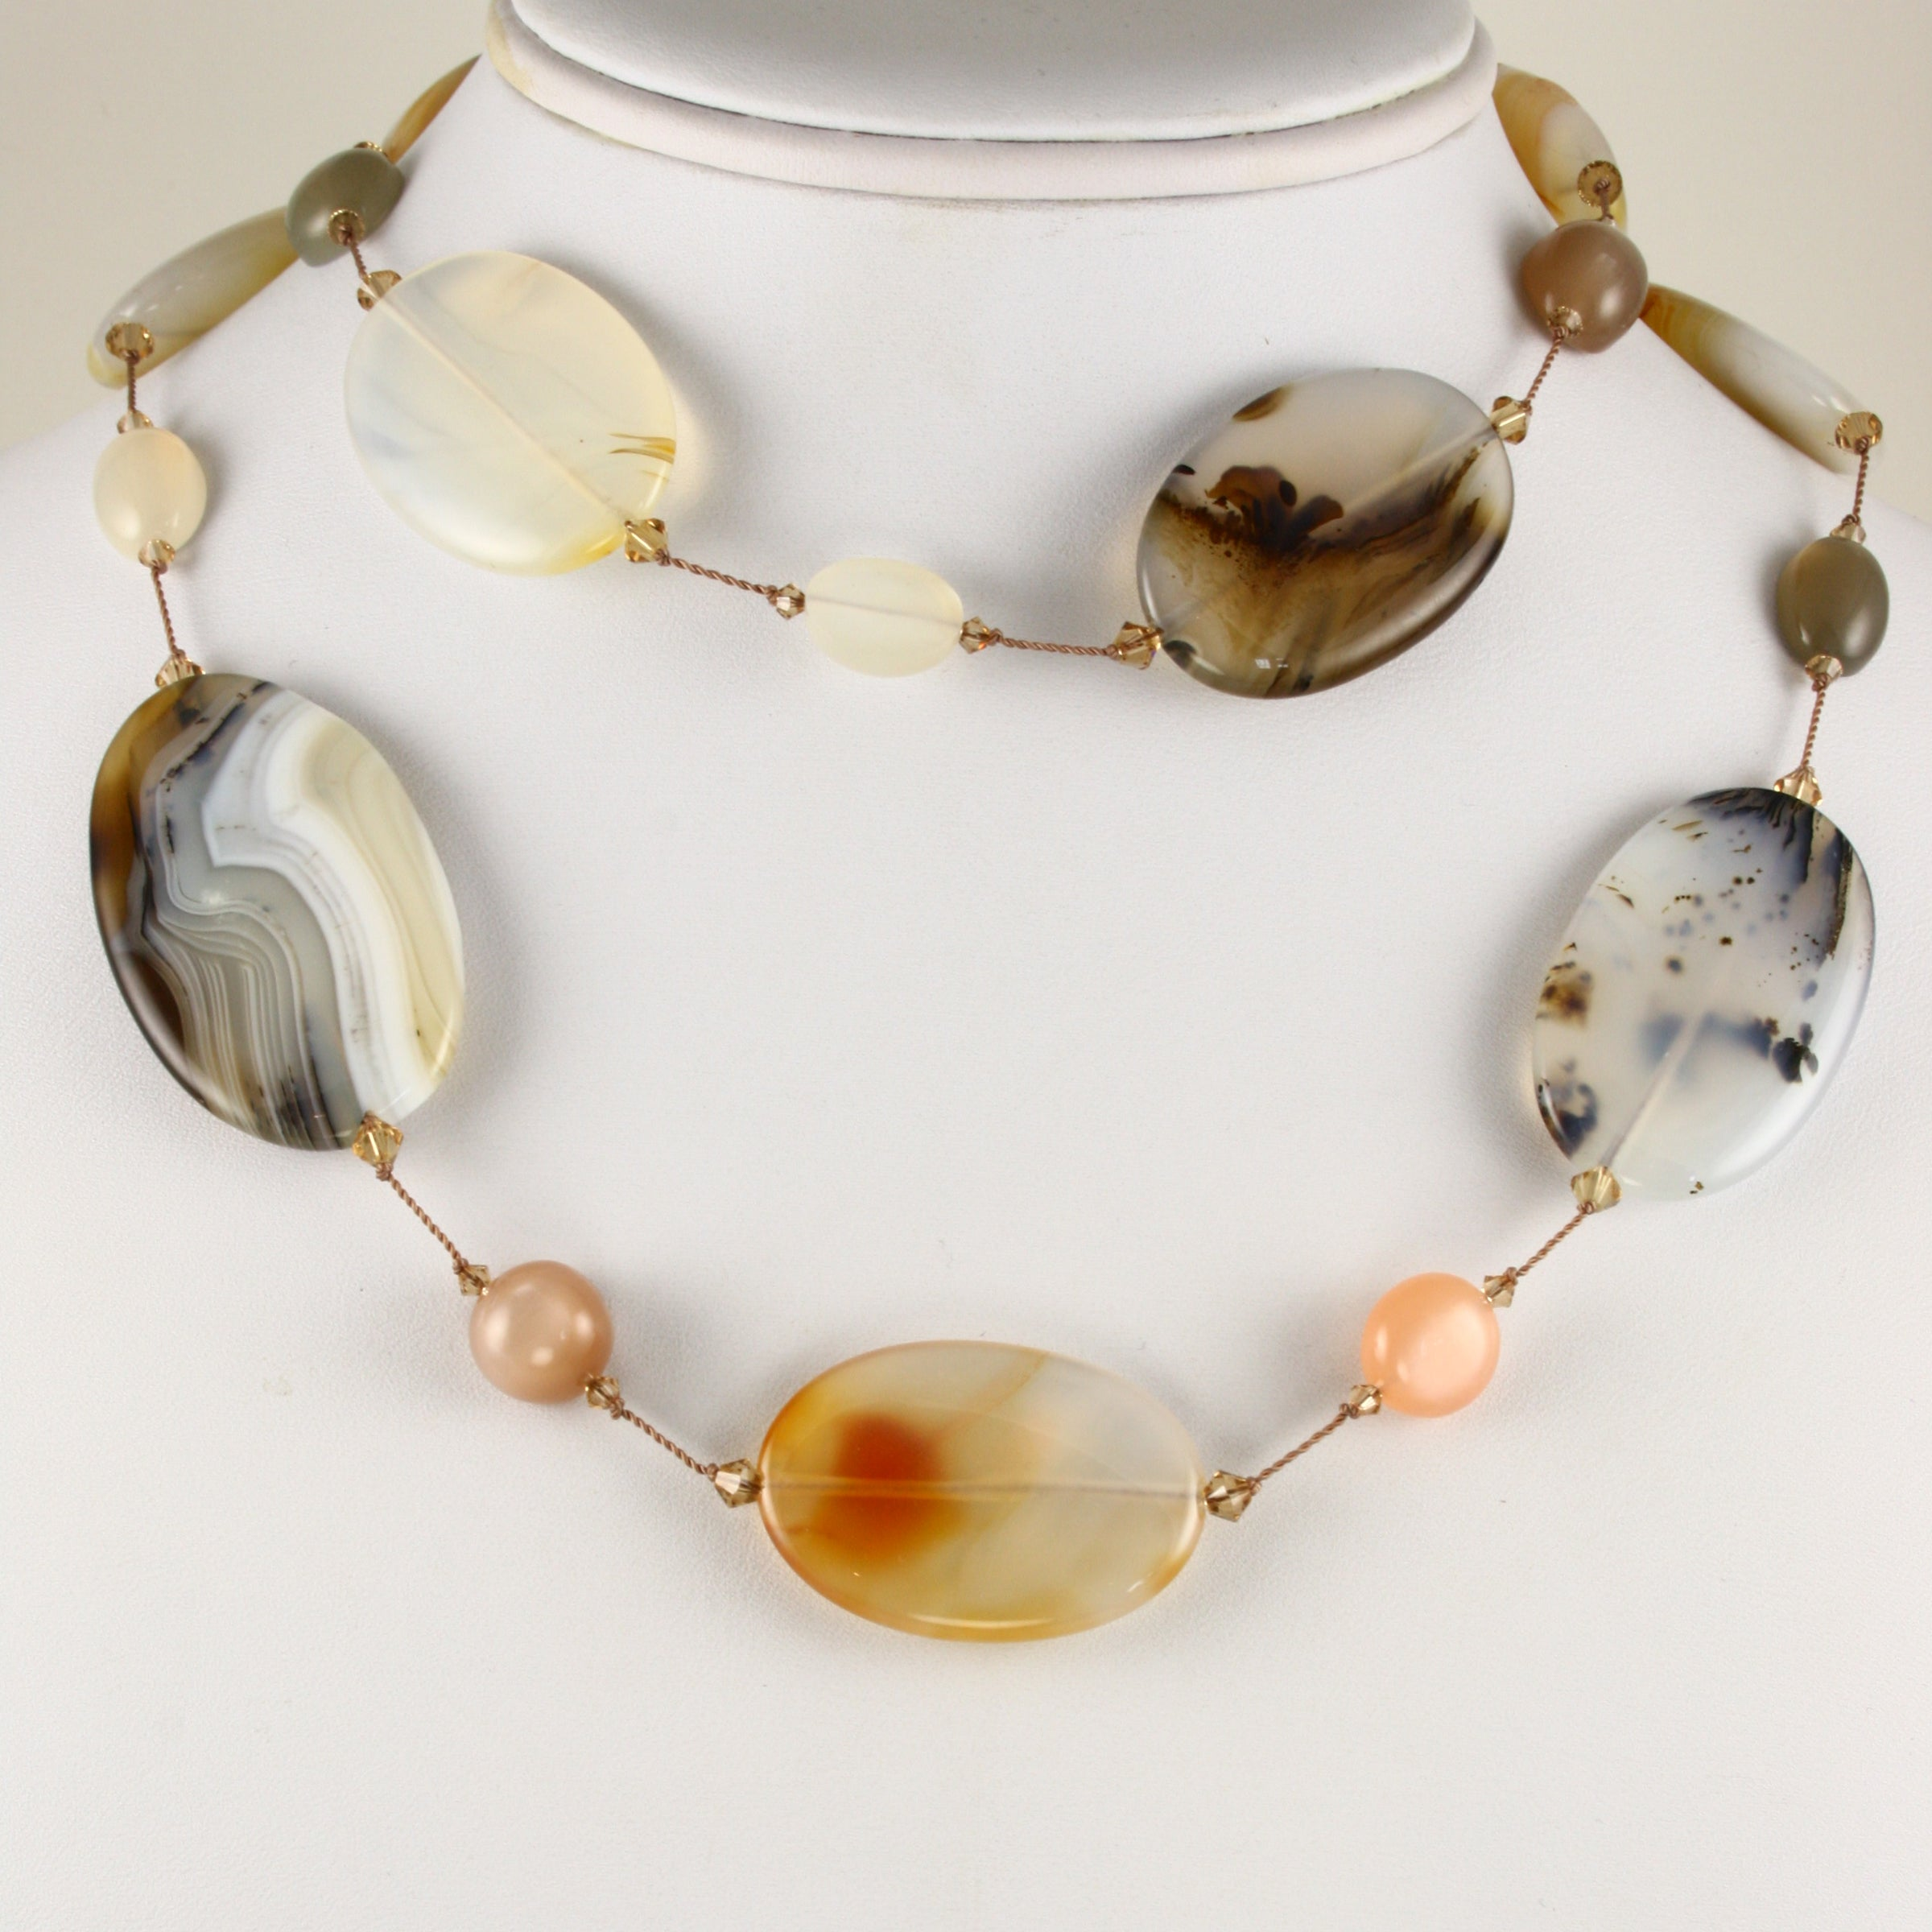 'Montana' Agate and Gemstone Necklace, 35 Inches, Sterling Silver